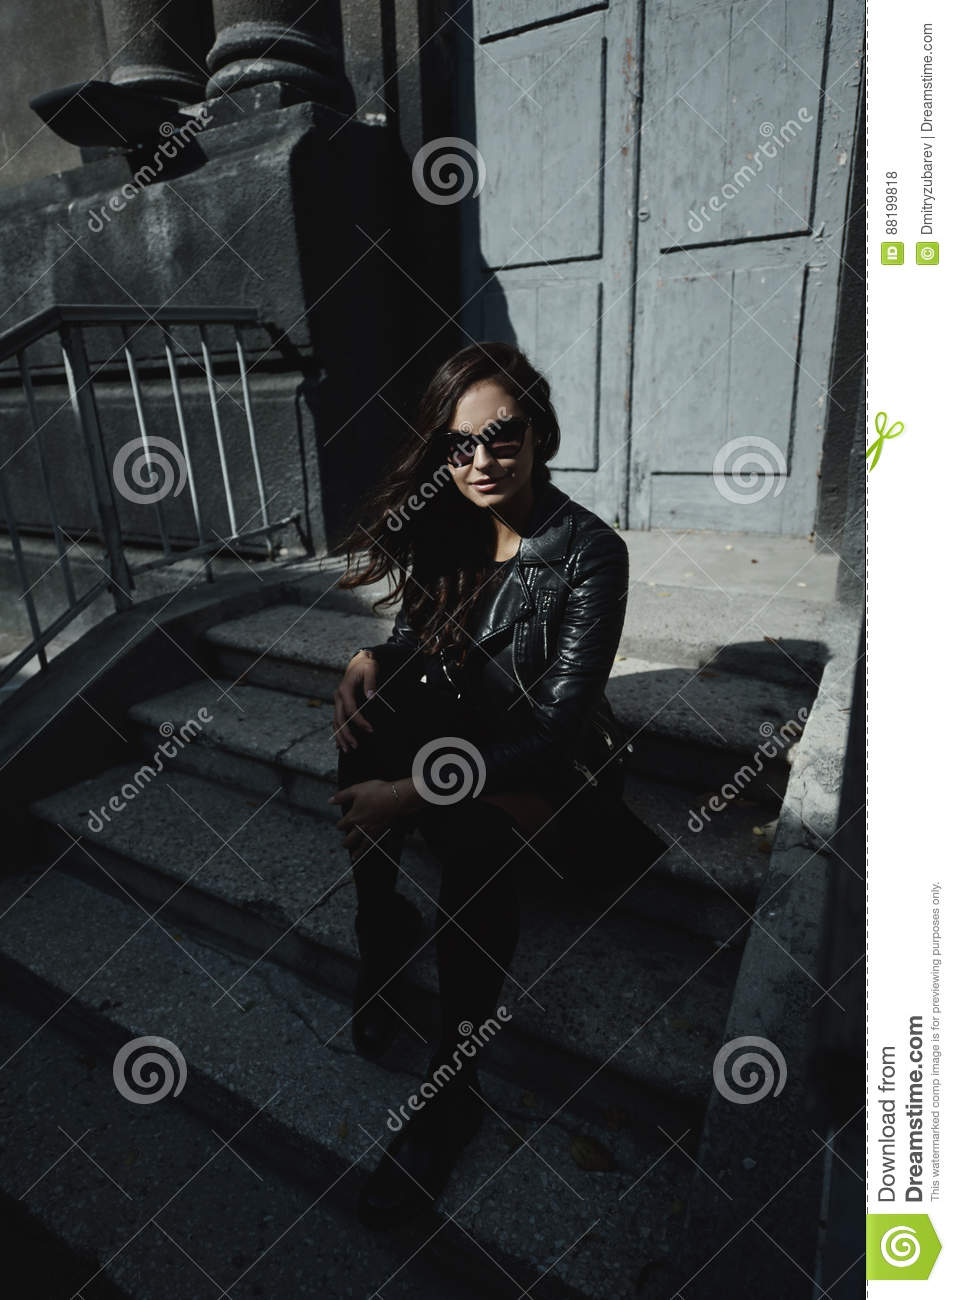 Eastern beautiful woman wearing biker jacket poses in backyard of vintage apartment house